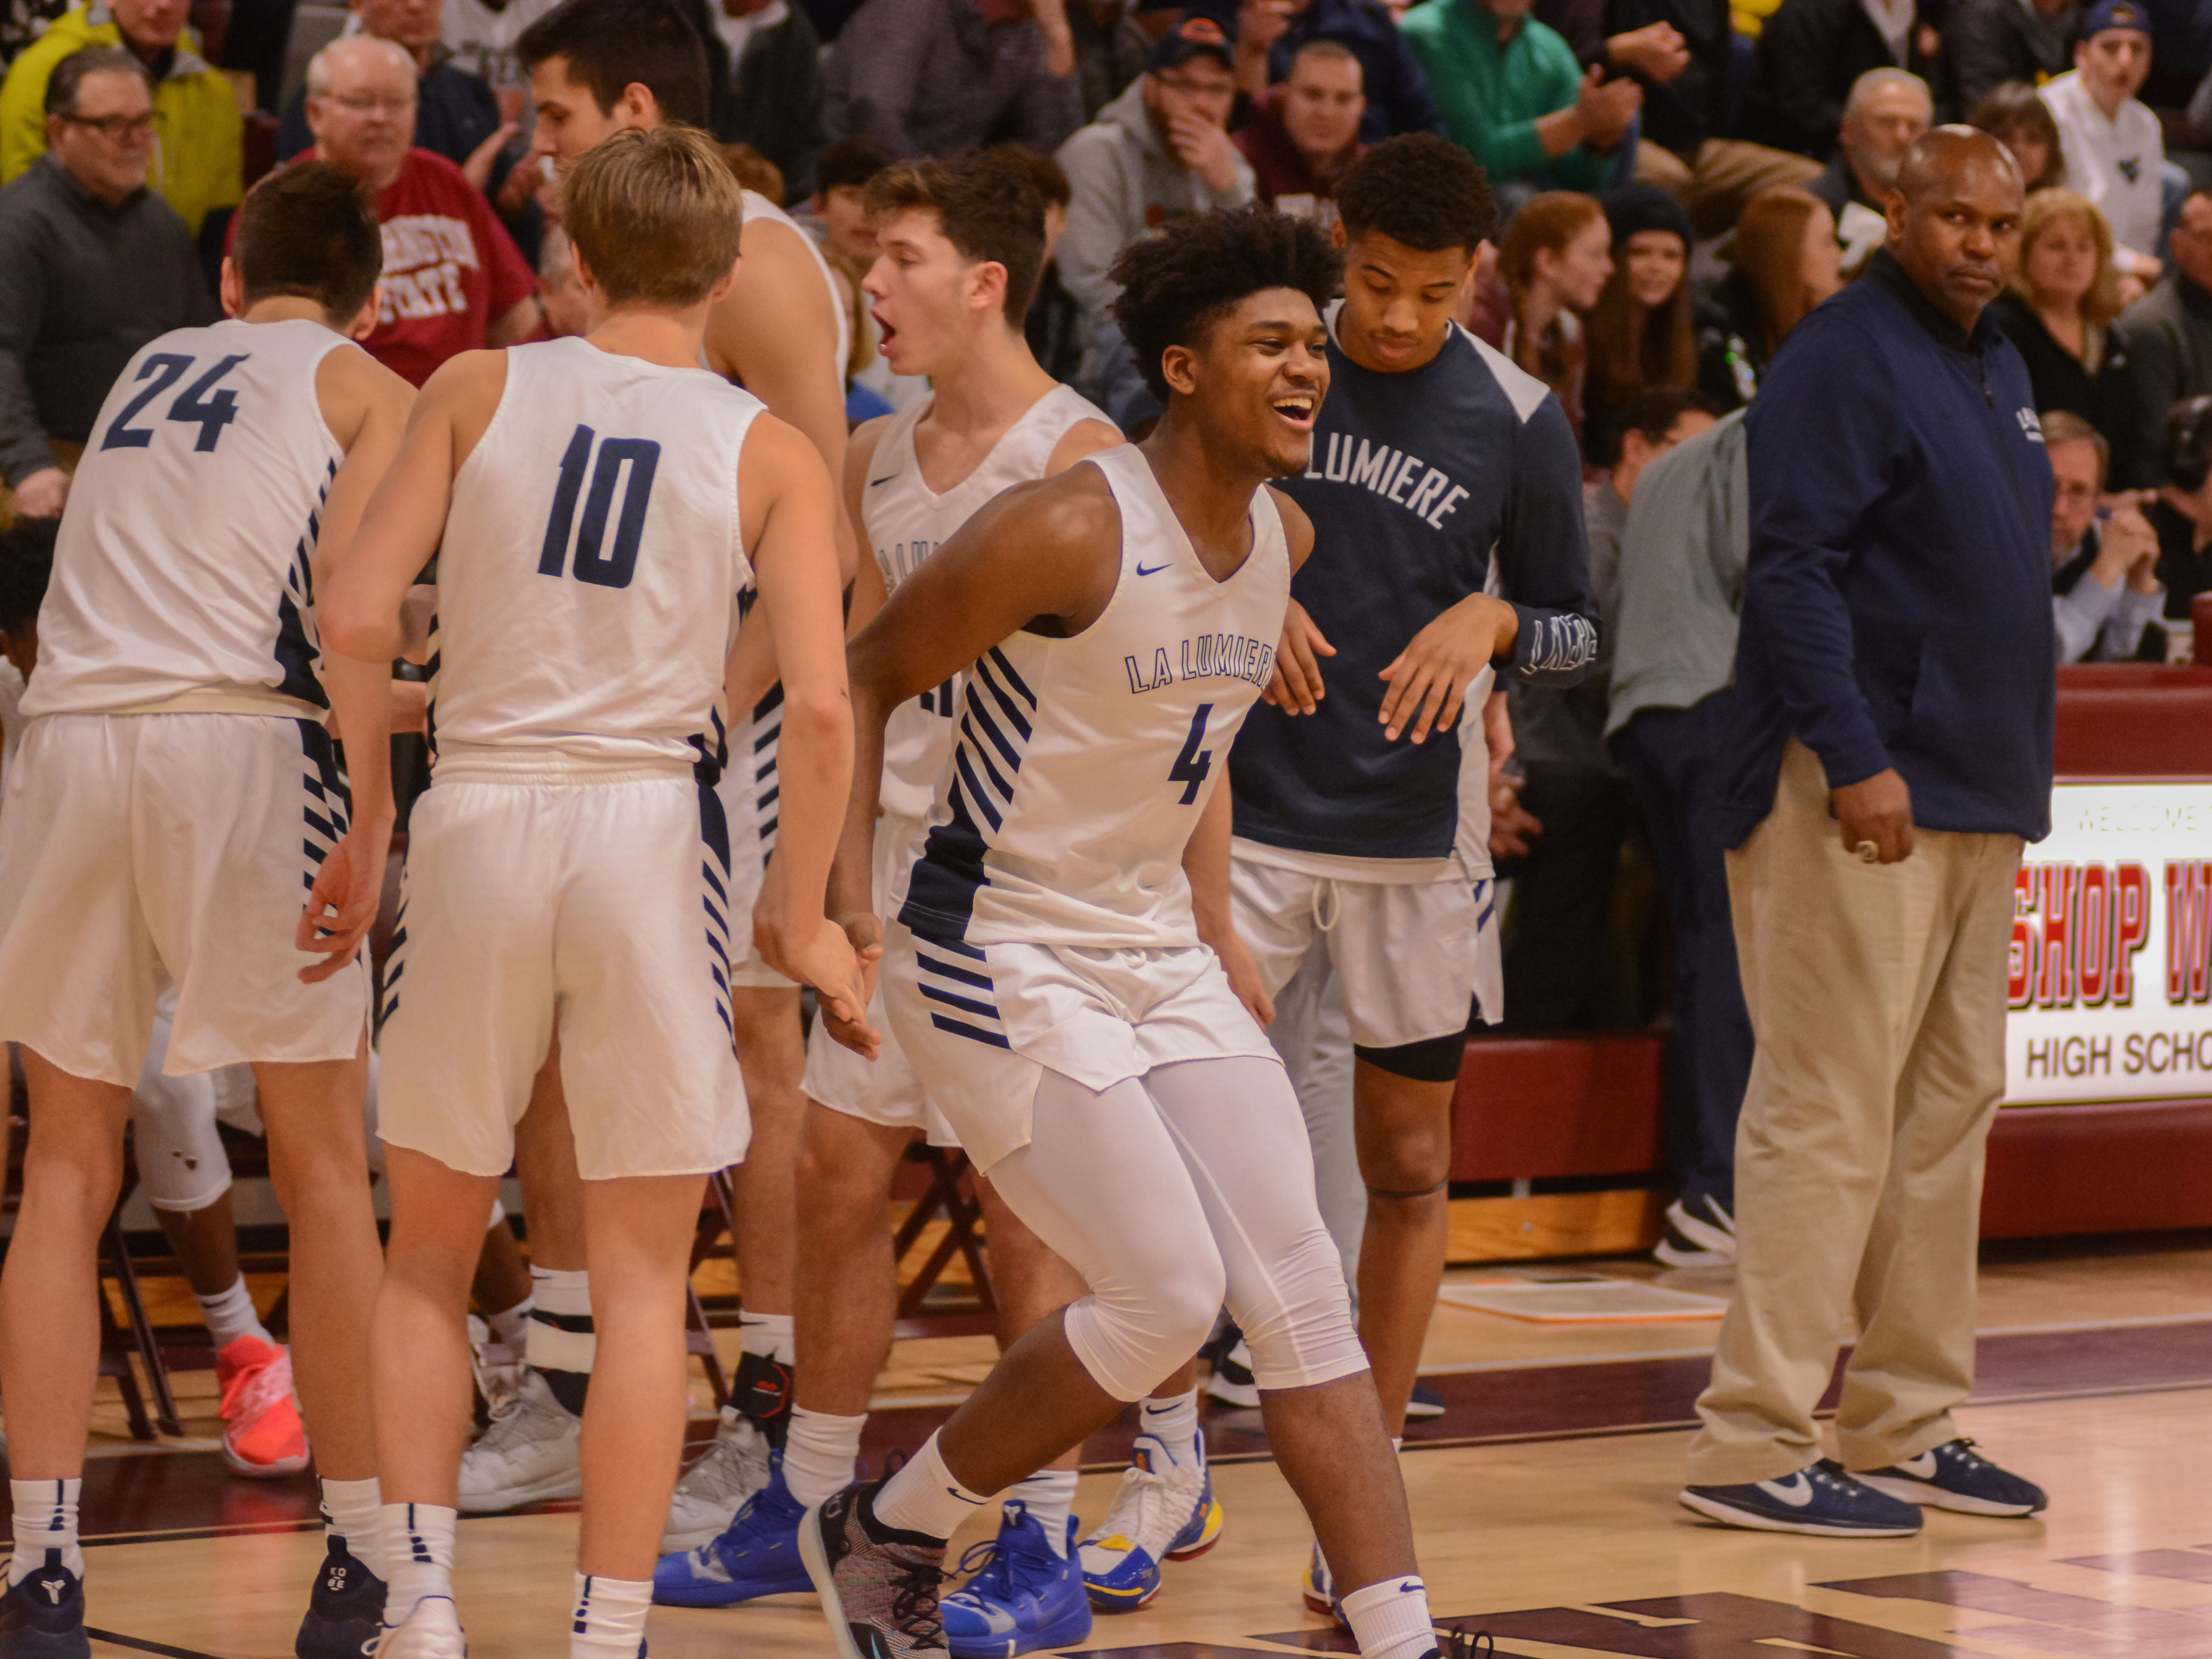 Former Irondequoit star Gerald Drumgoole is introduced before La Lumiere's game against Wasatch at the Bob Kirk Invitational in Cumberland, Maryland.